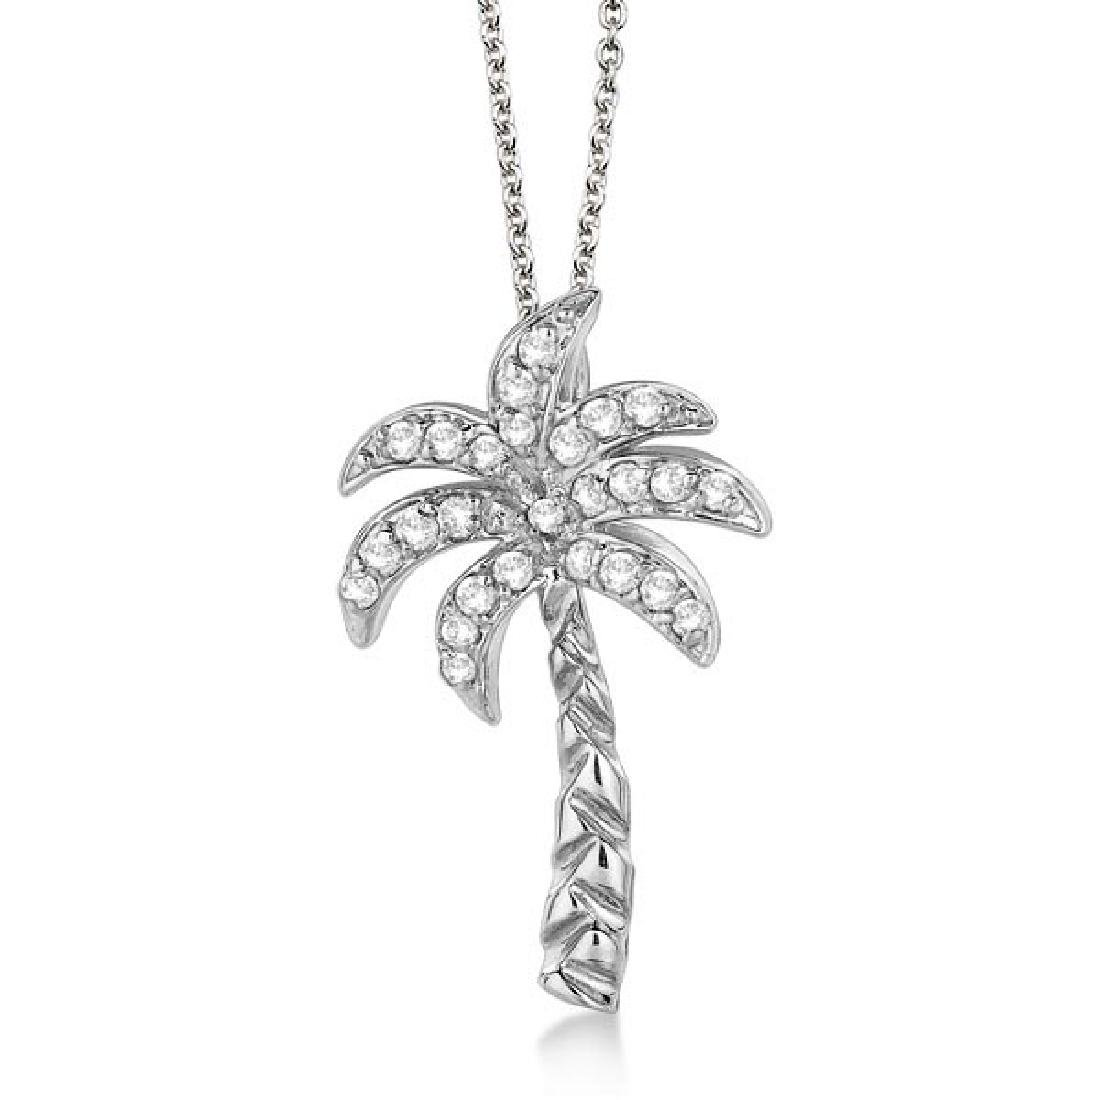 Palm Tree Shaped Diamond Pendant Necklace 14k White Gol